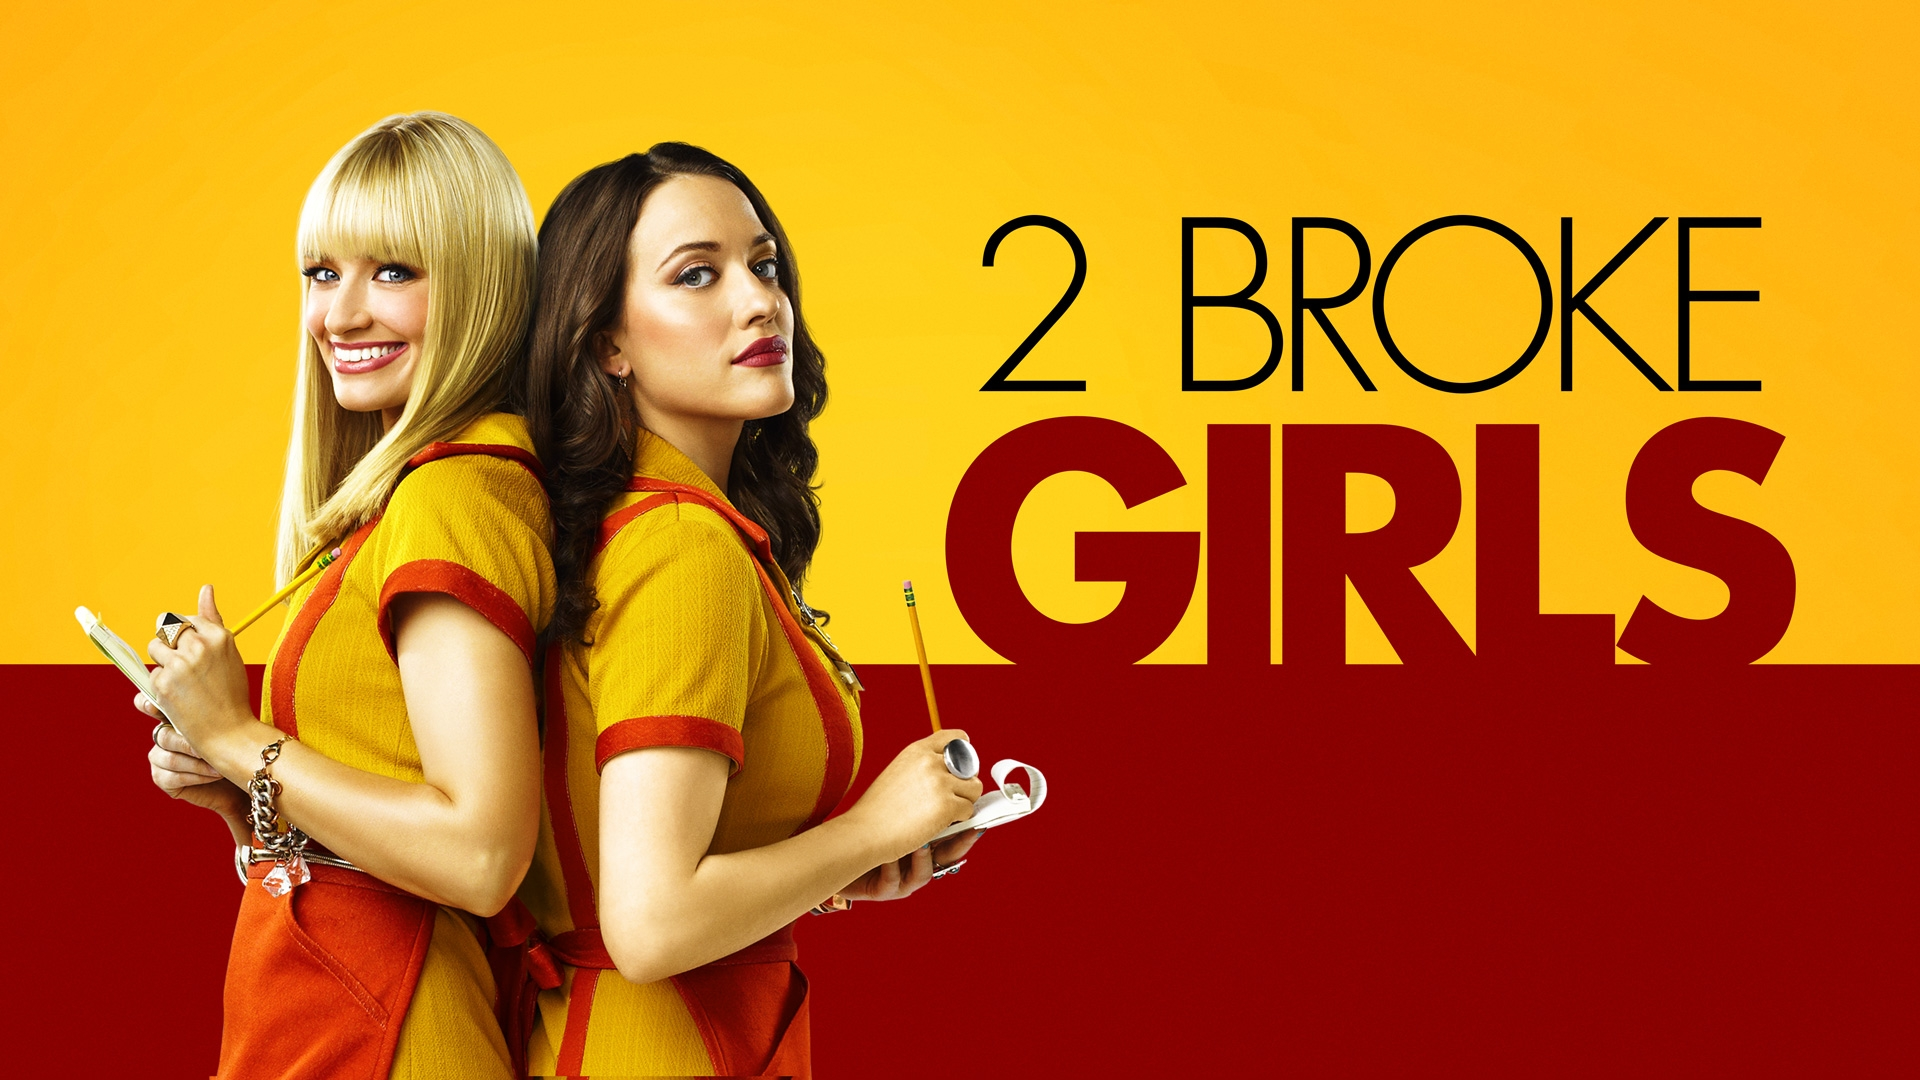 TV 2 Broke Girls Wallpaper